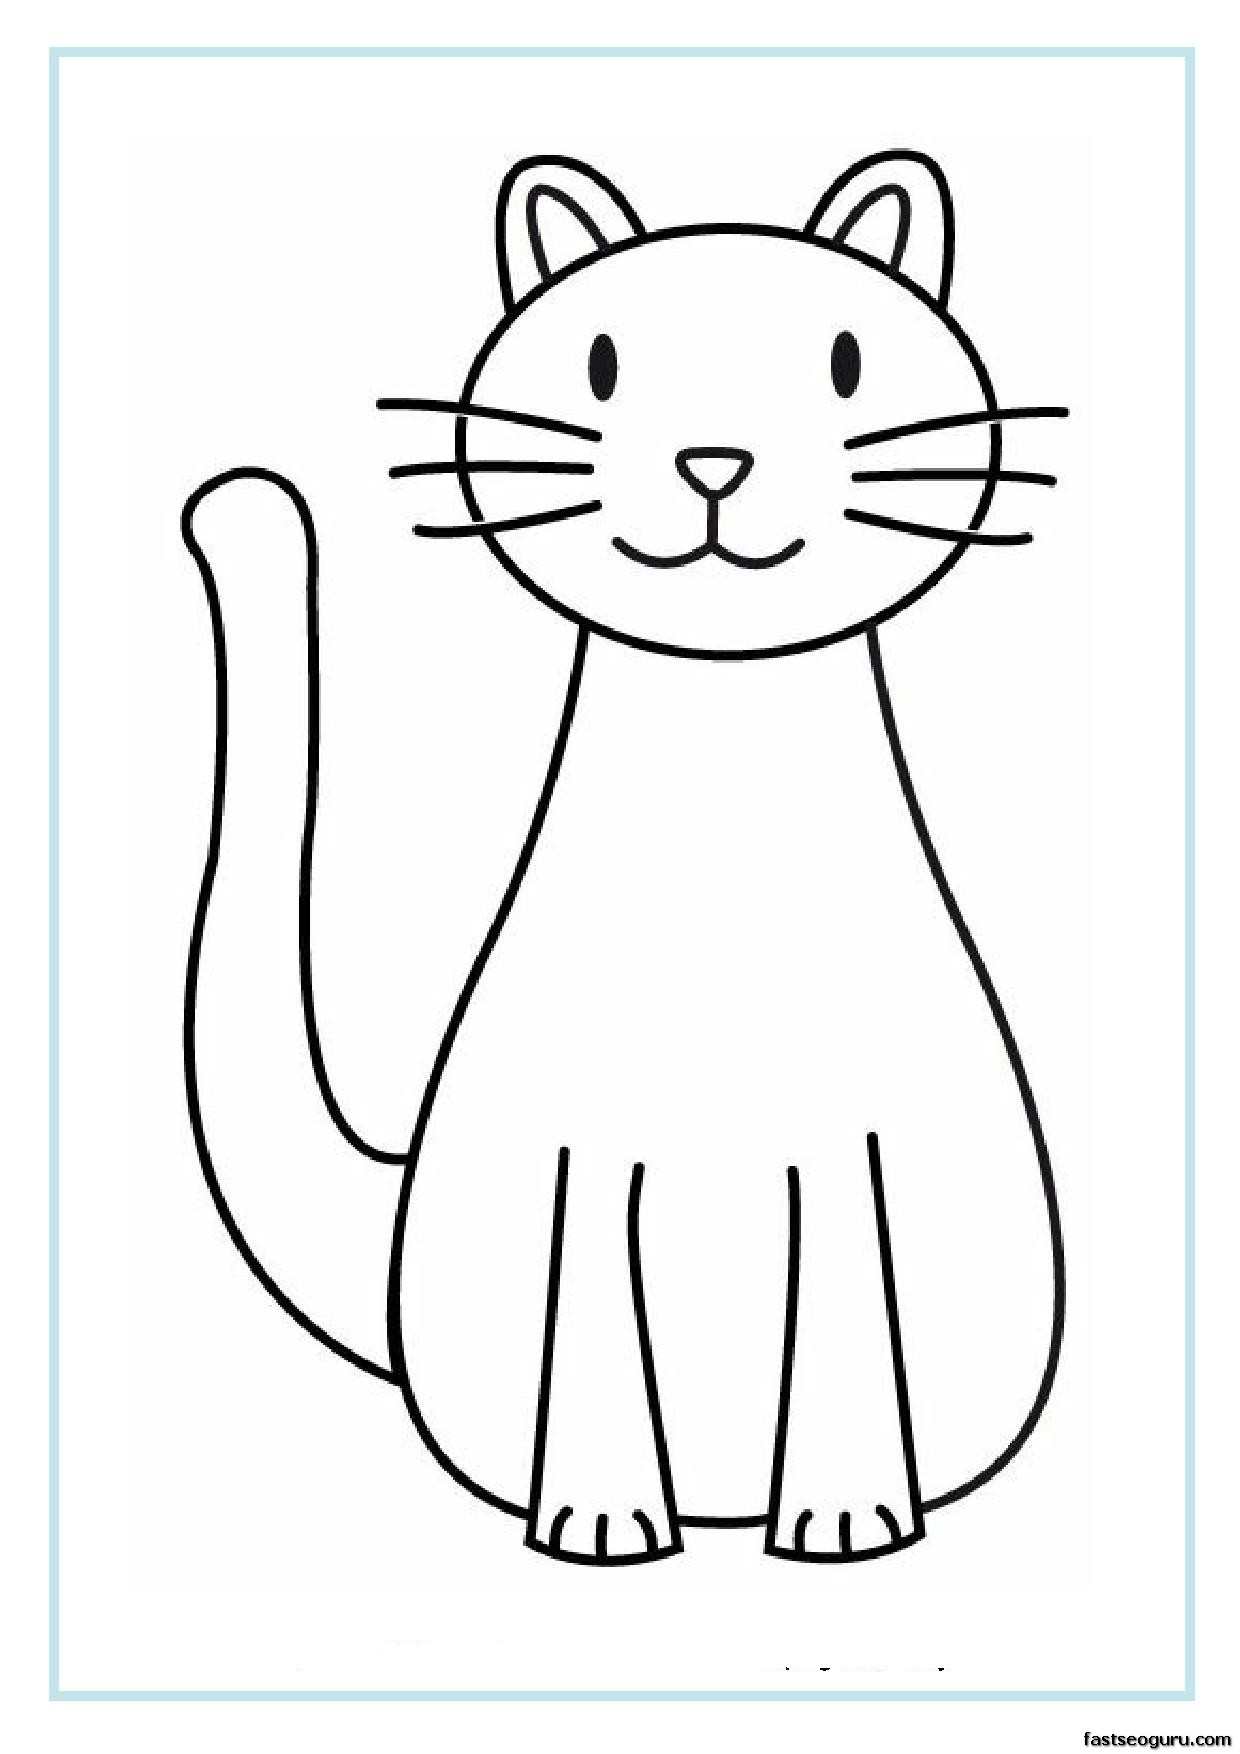 Printable Cat Coloring Pages For Kids Cat Printable Coloring Pages